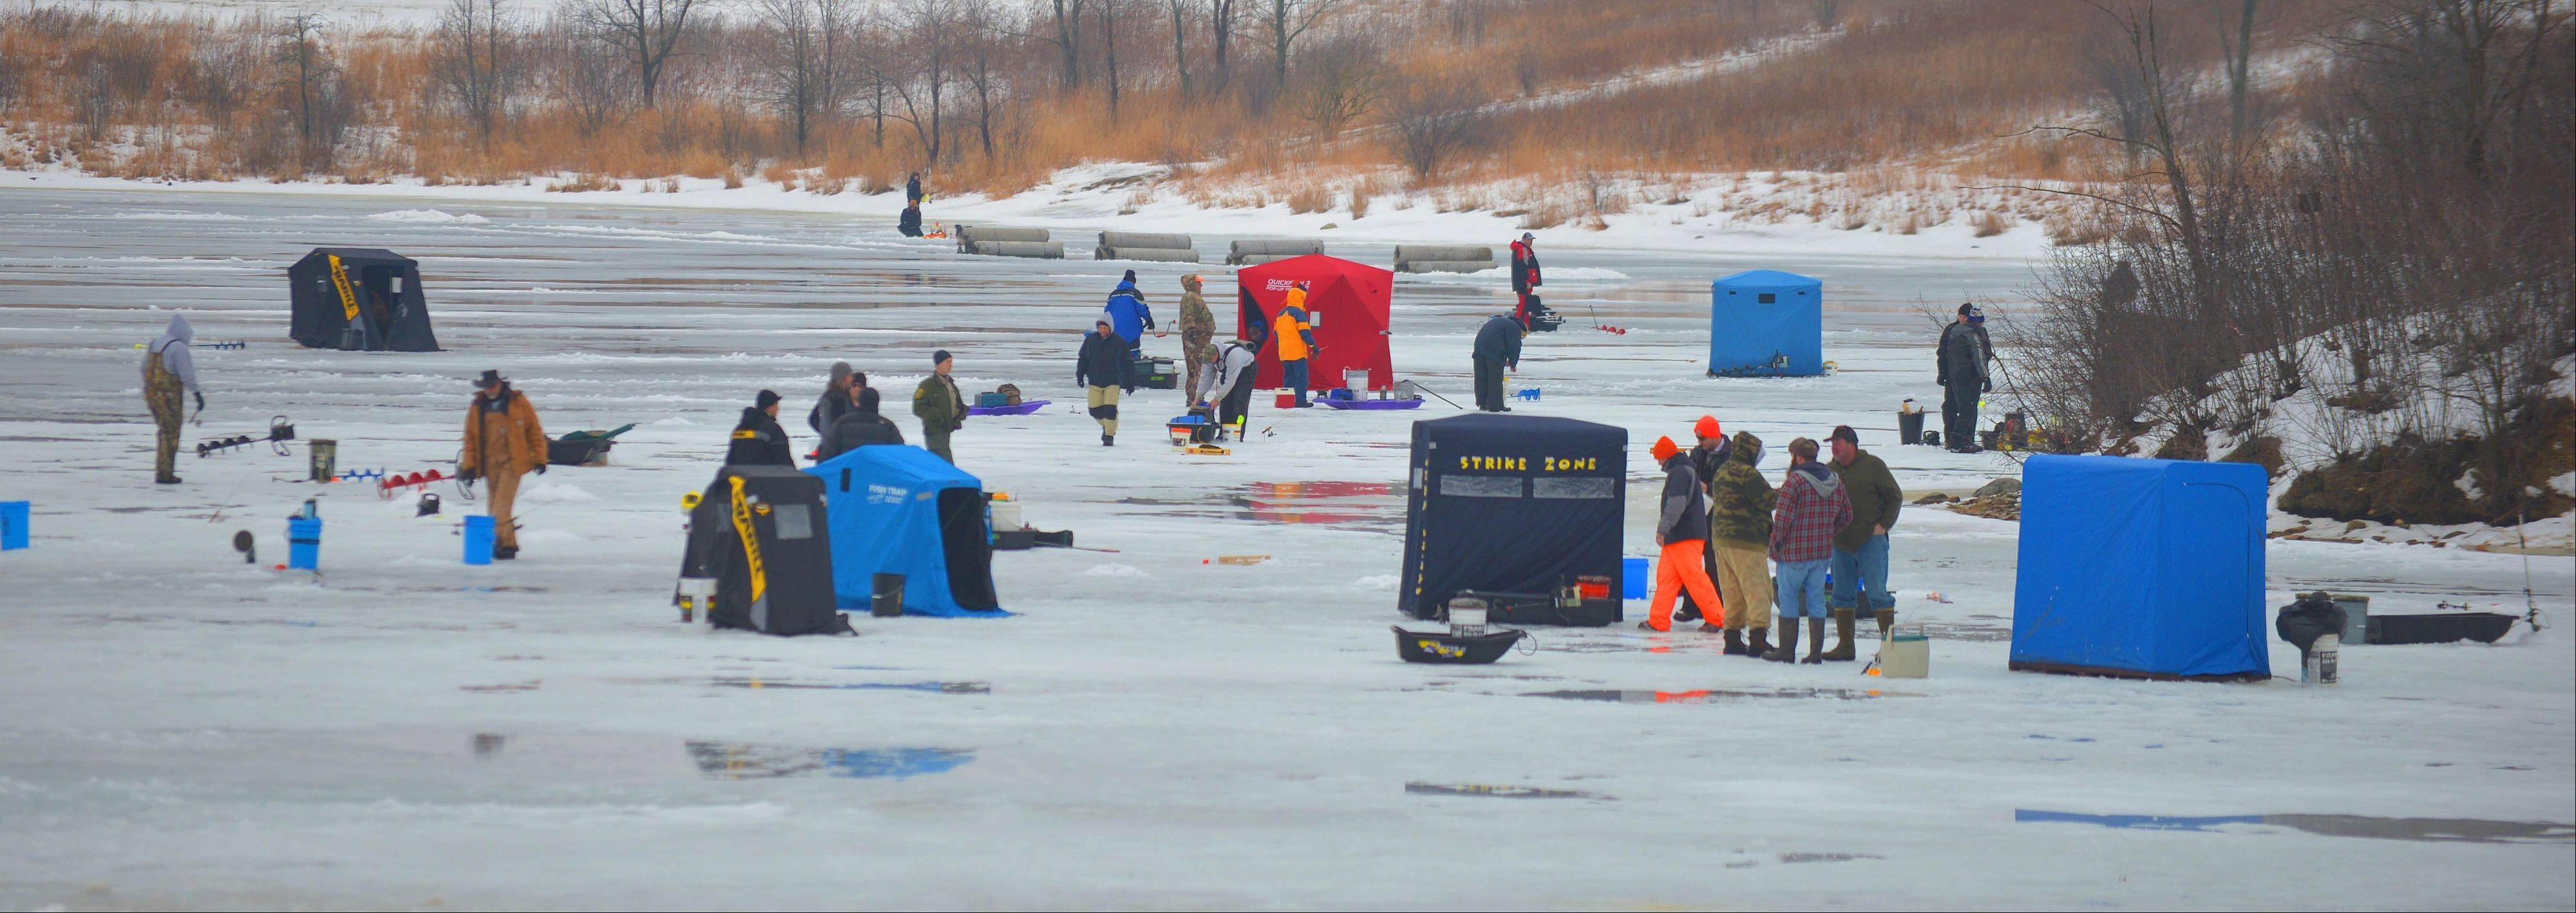 The Hard Water Classic ice-fishing tournament attracted more than 100 fisherman Saturday to the frozen waters of Blackwell Forest Preserve.